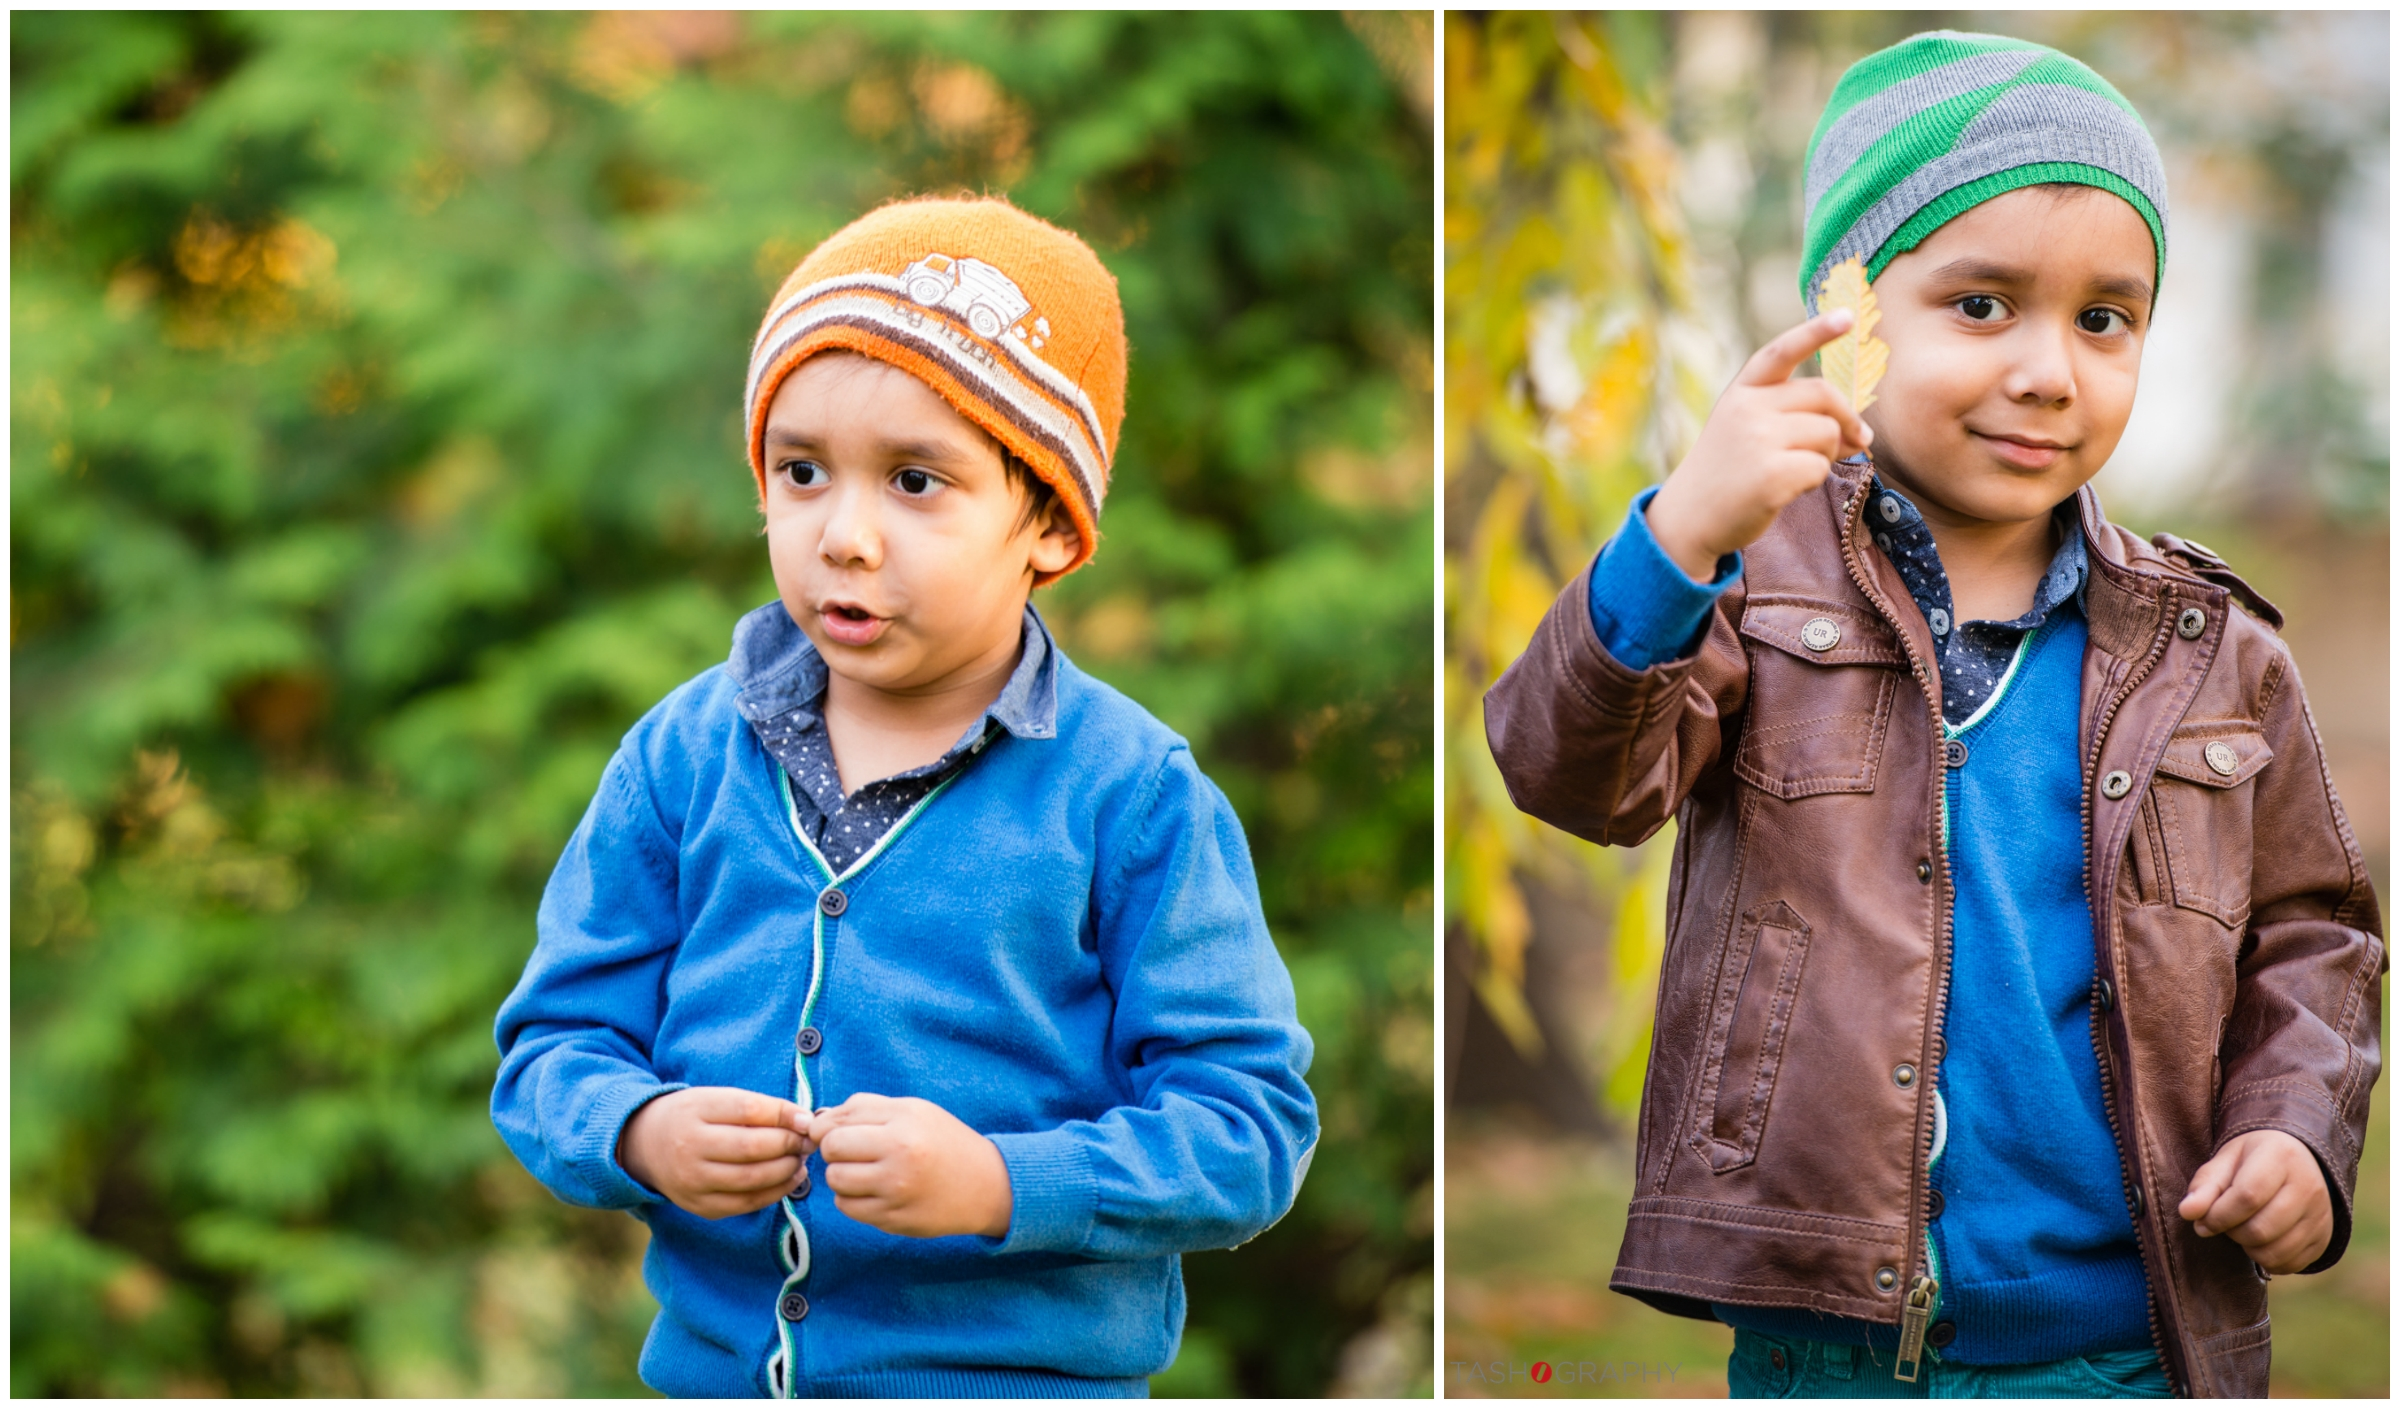 Thislittle guy really knows how to rock a beanie!The orange hat was passed down from his older brother who looked very similar at this age. His mom wanted to get a few shots of their youngest wearing the same orange hat so we can create a framed collage.